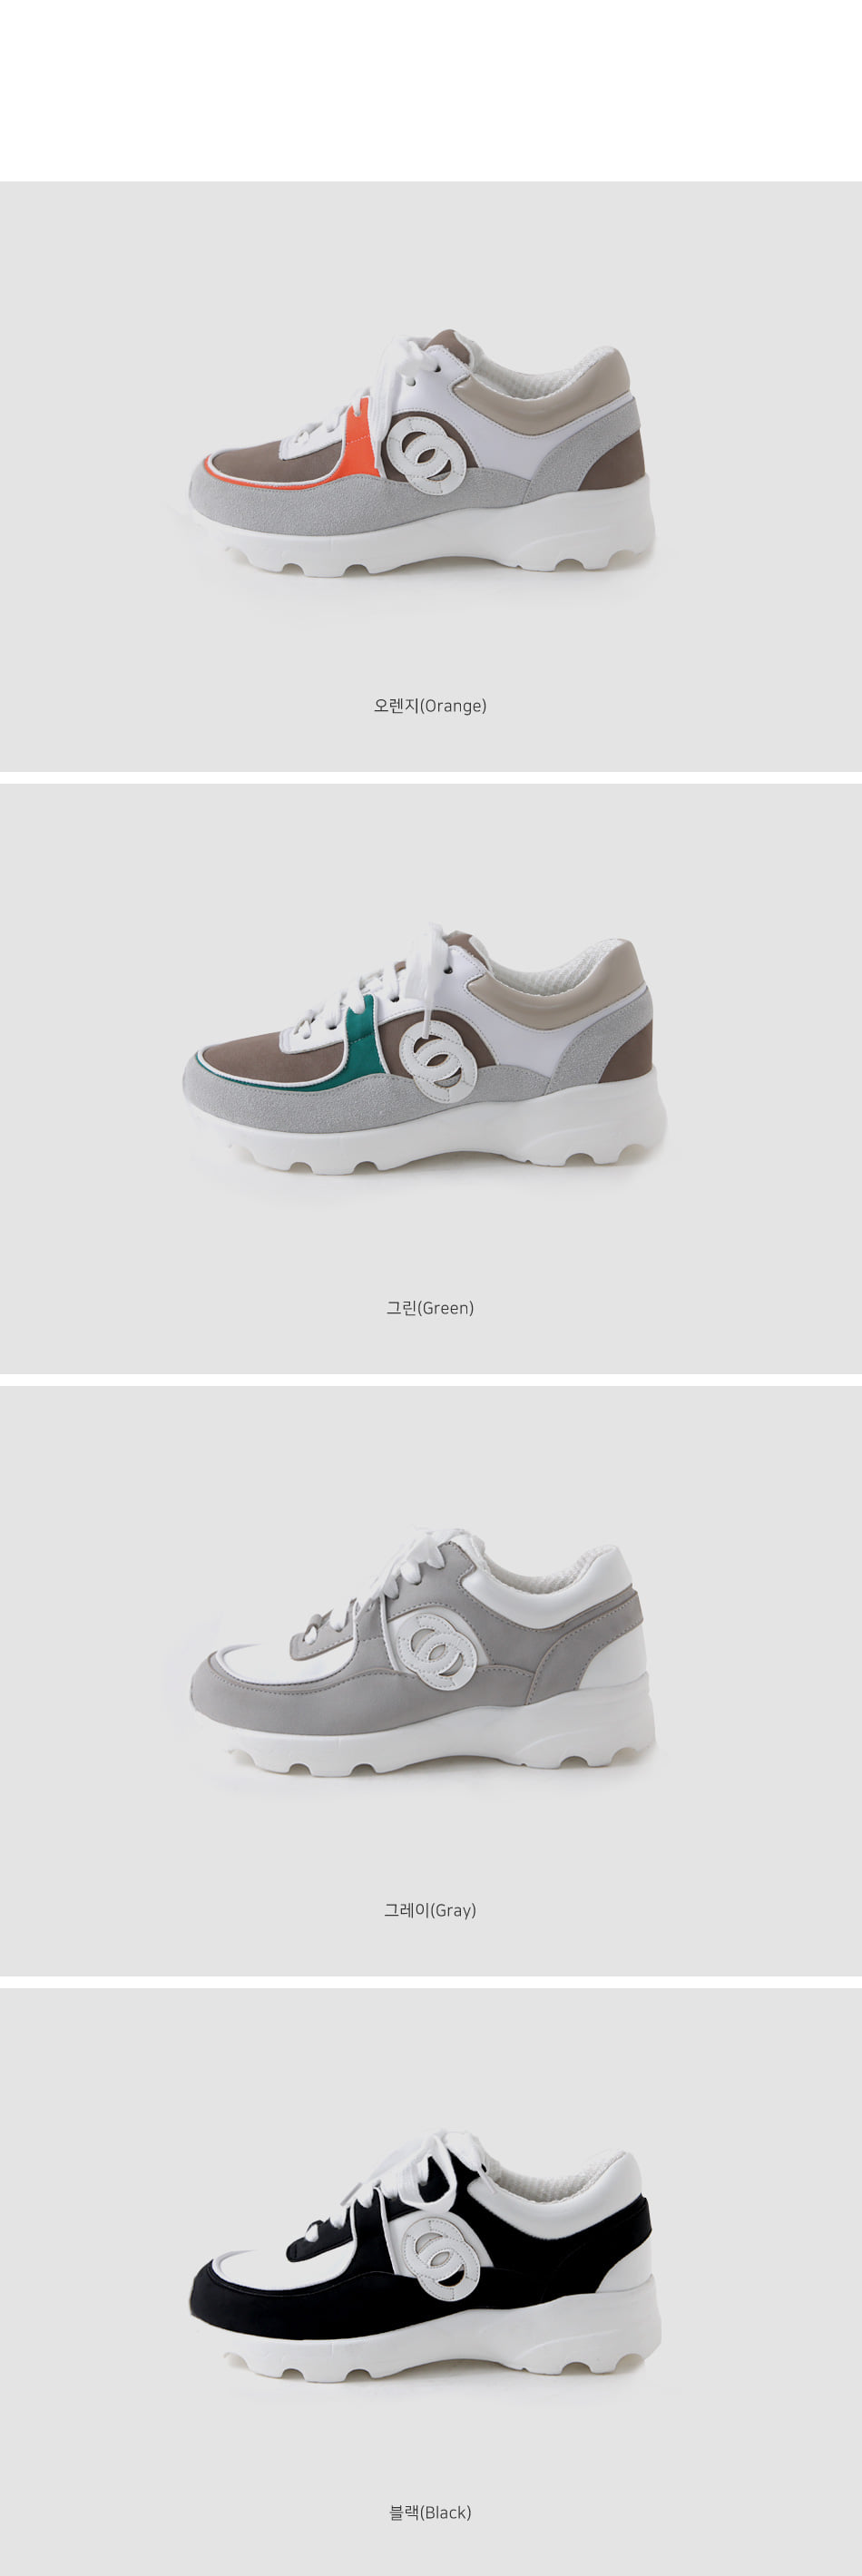 Shannts sneakers 4cm